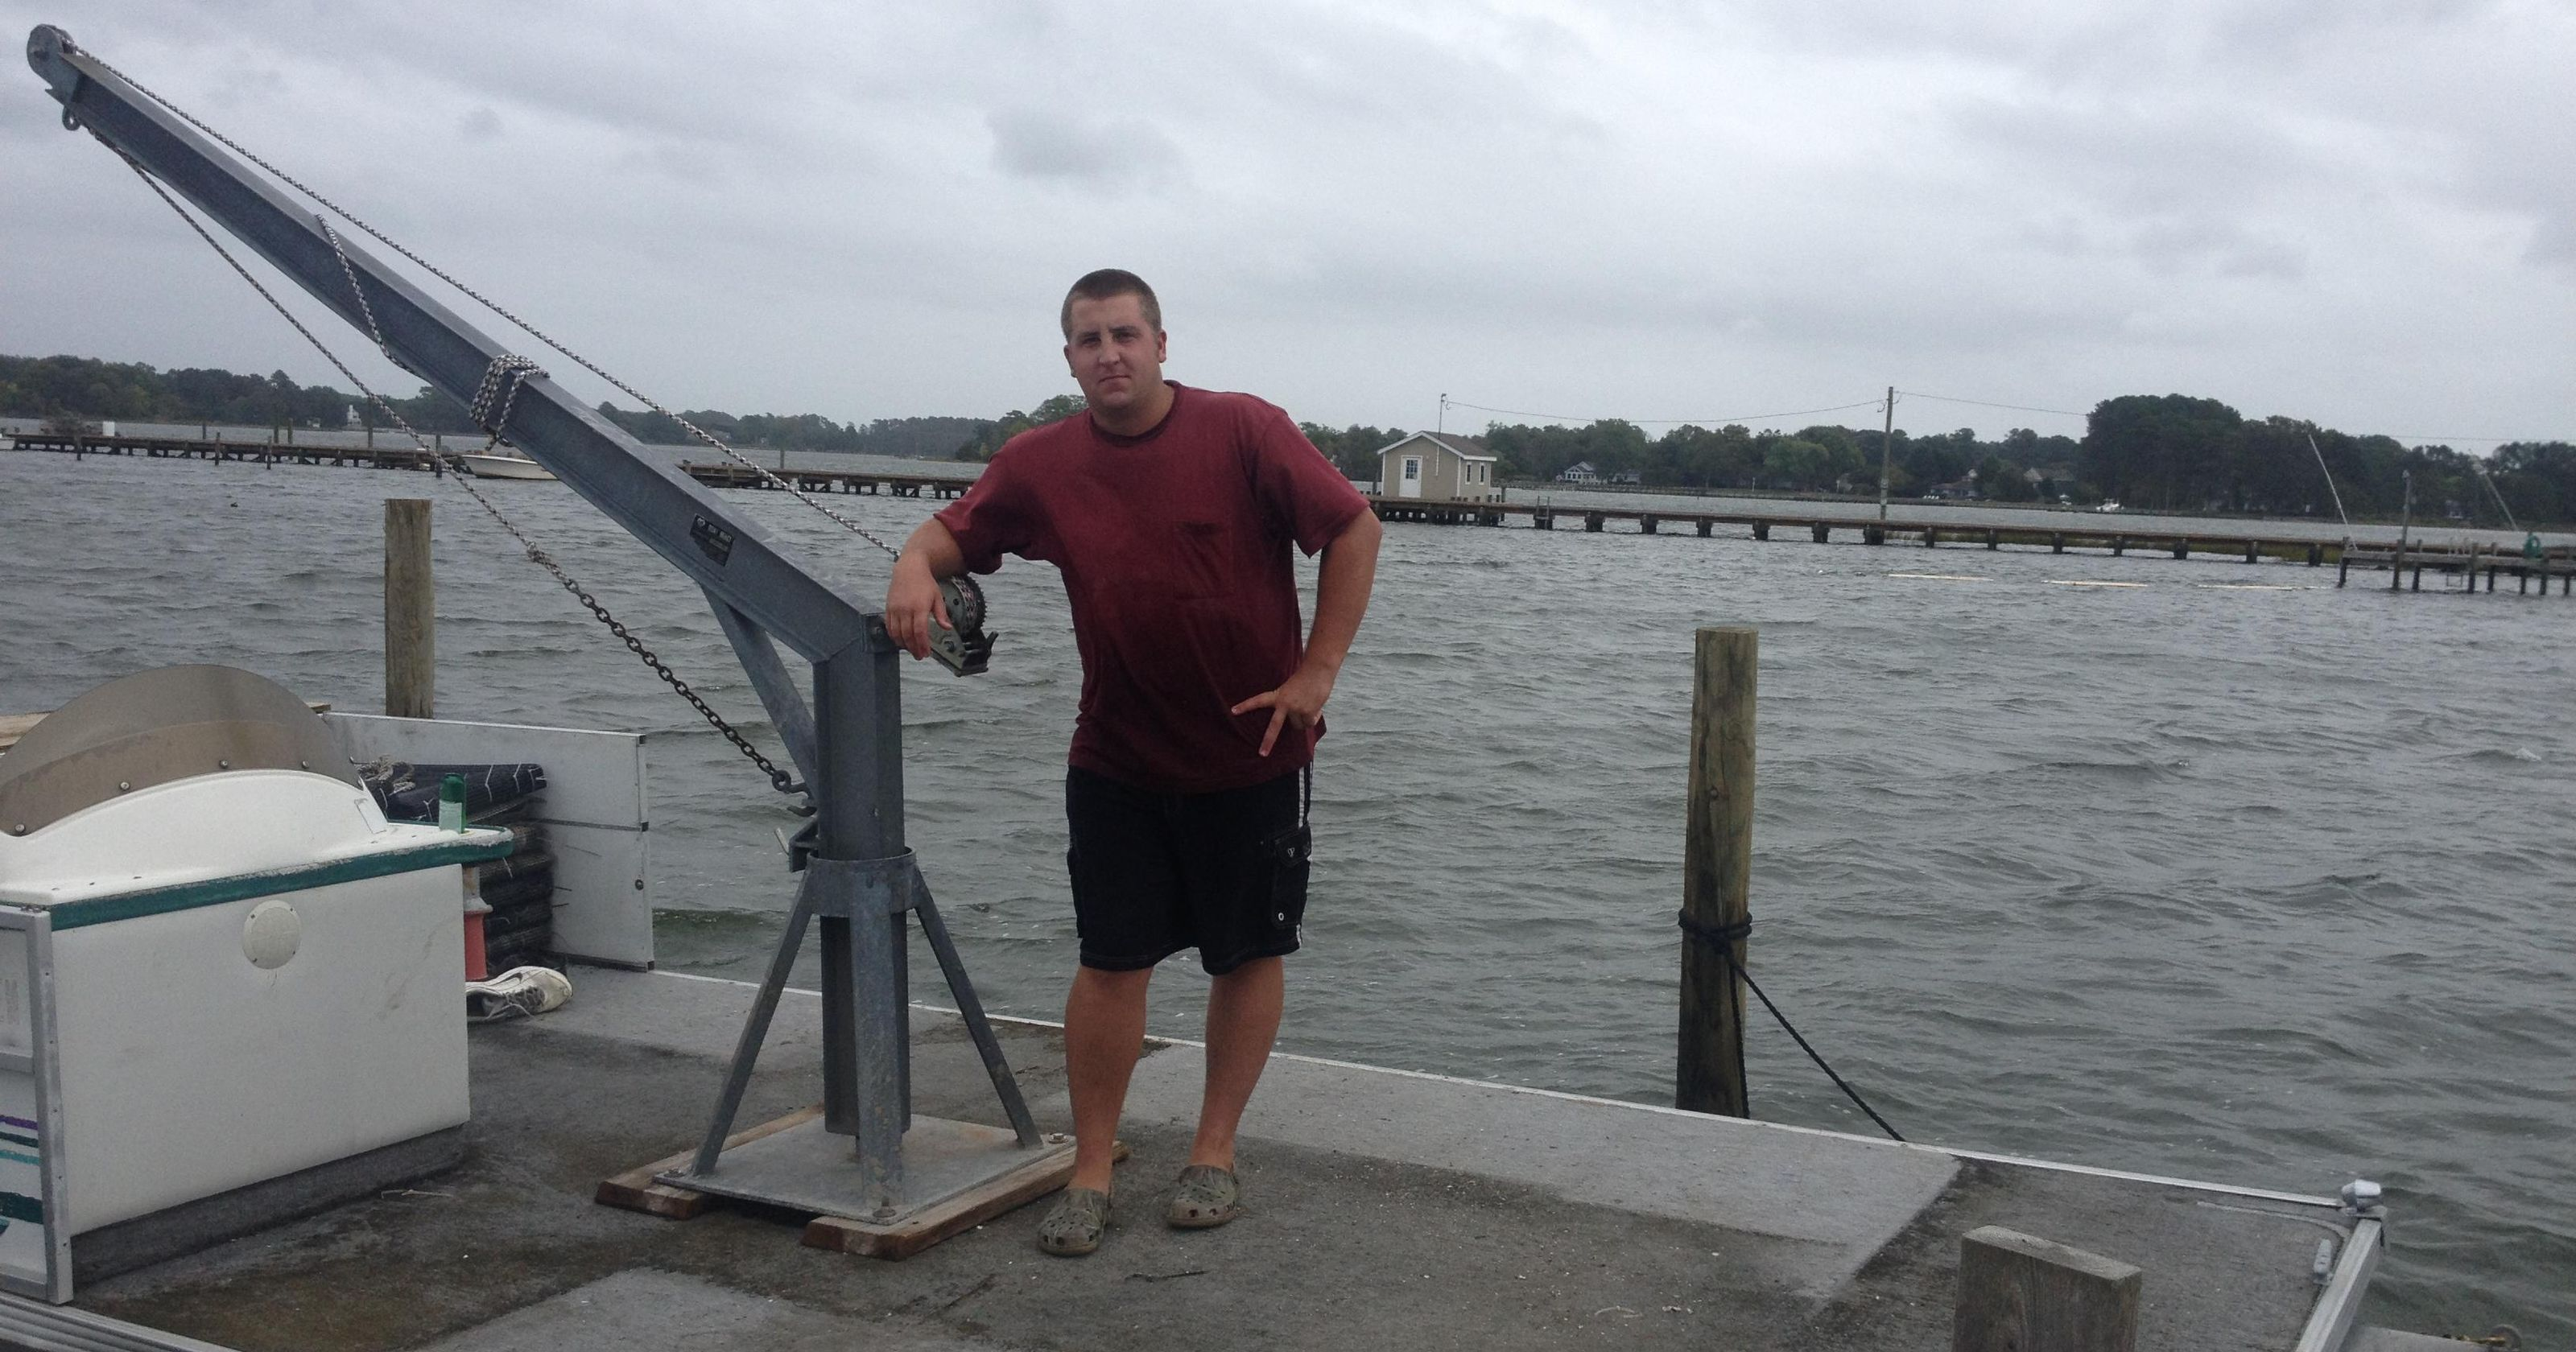 after graduating from jmu daniel mears 21 returns to start after graduating from jmu daniel mears 21 returns to start aquaculture business in